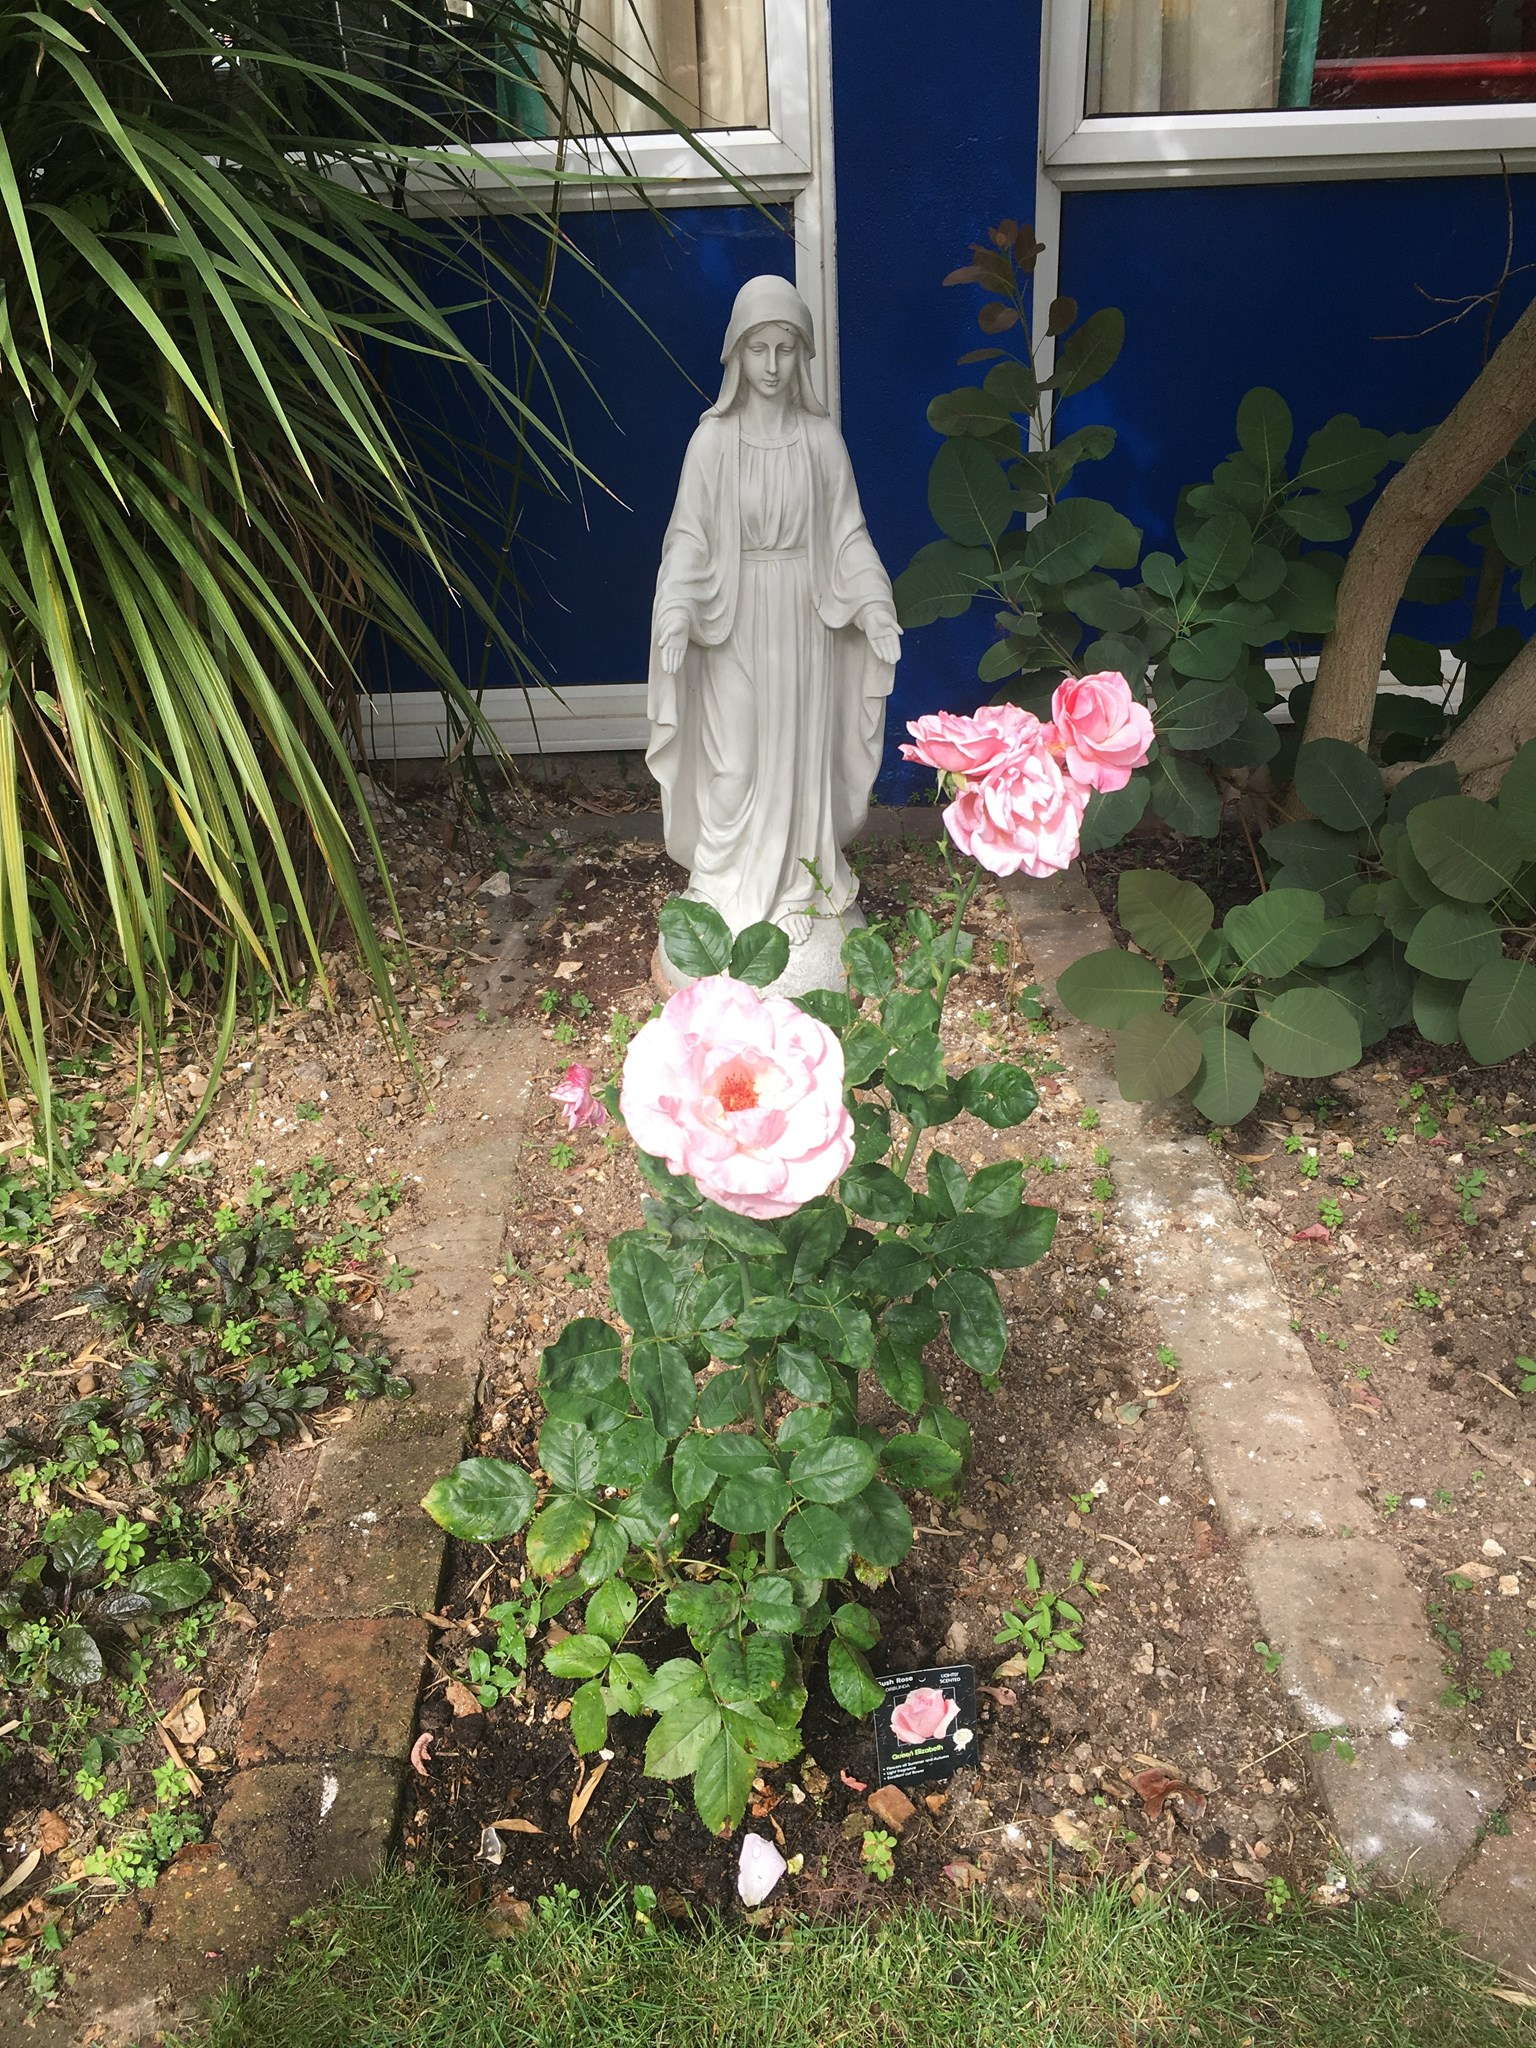 Elizabeth rose at St Vincents in full bloom